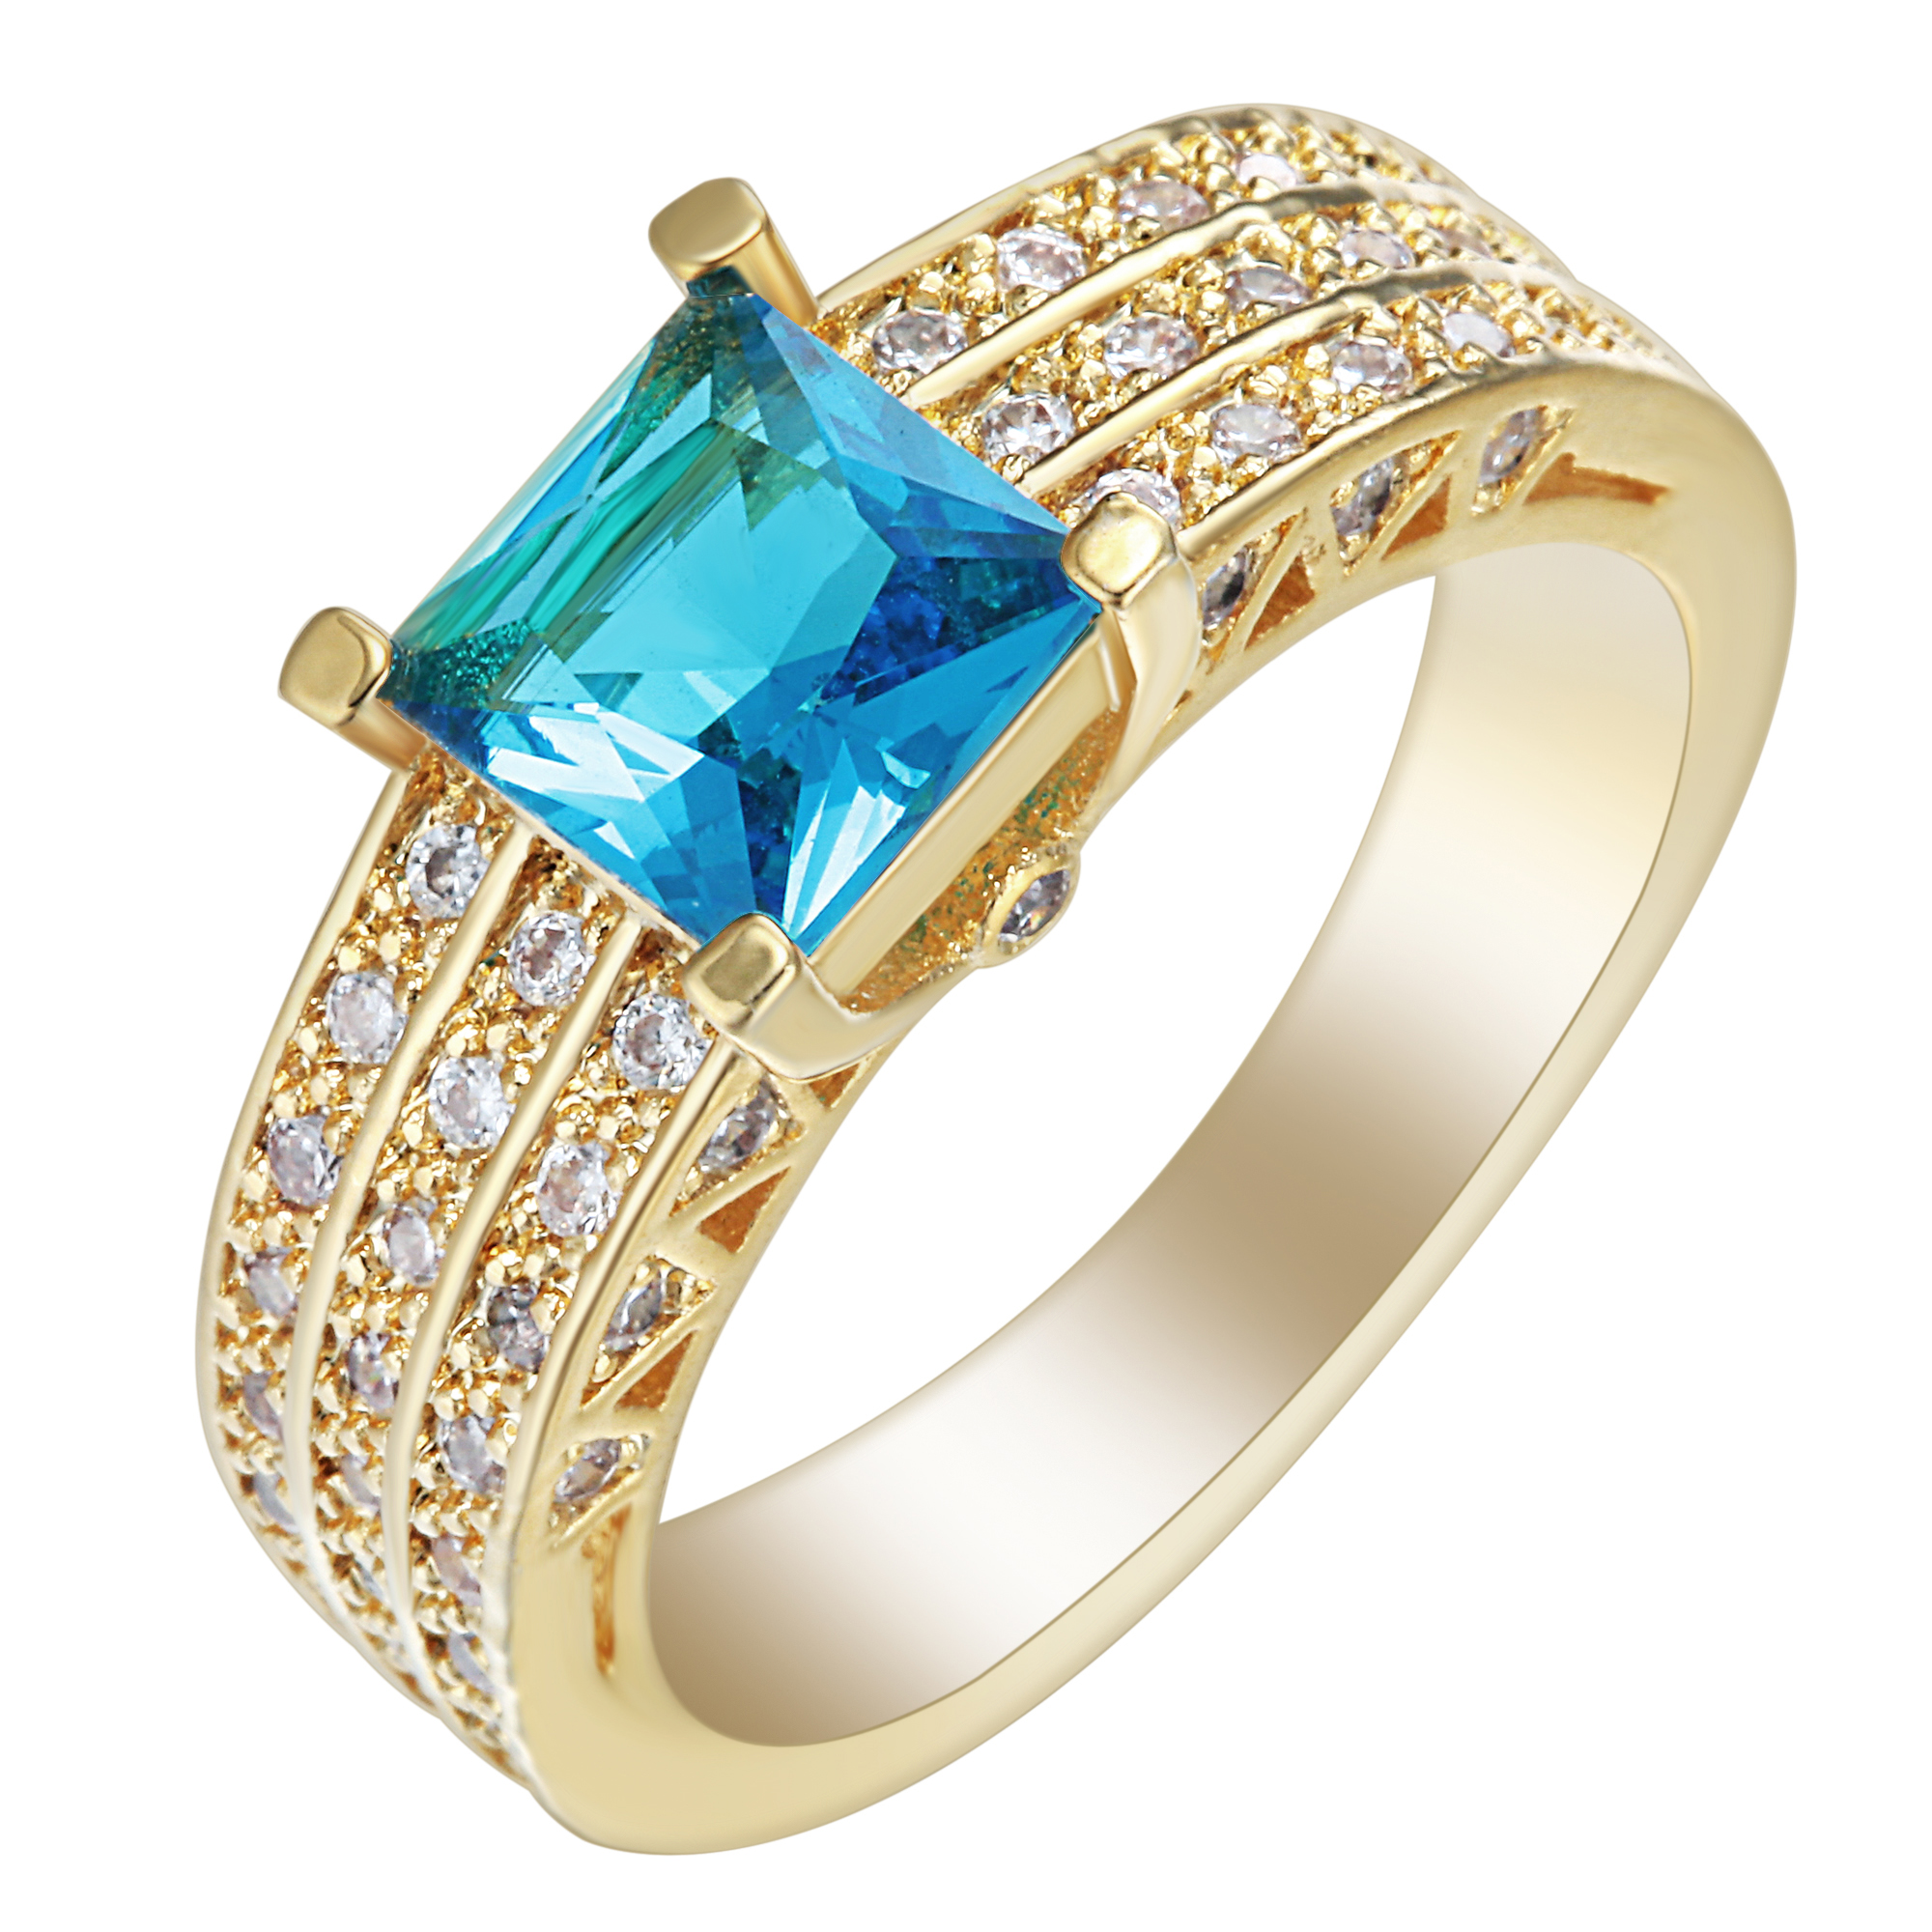 gemstones portal of information and aquamarine blue ring mystical rings powers sapphire stone the jewellery healing